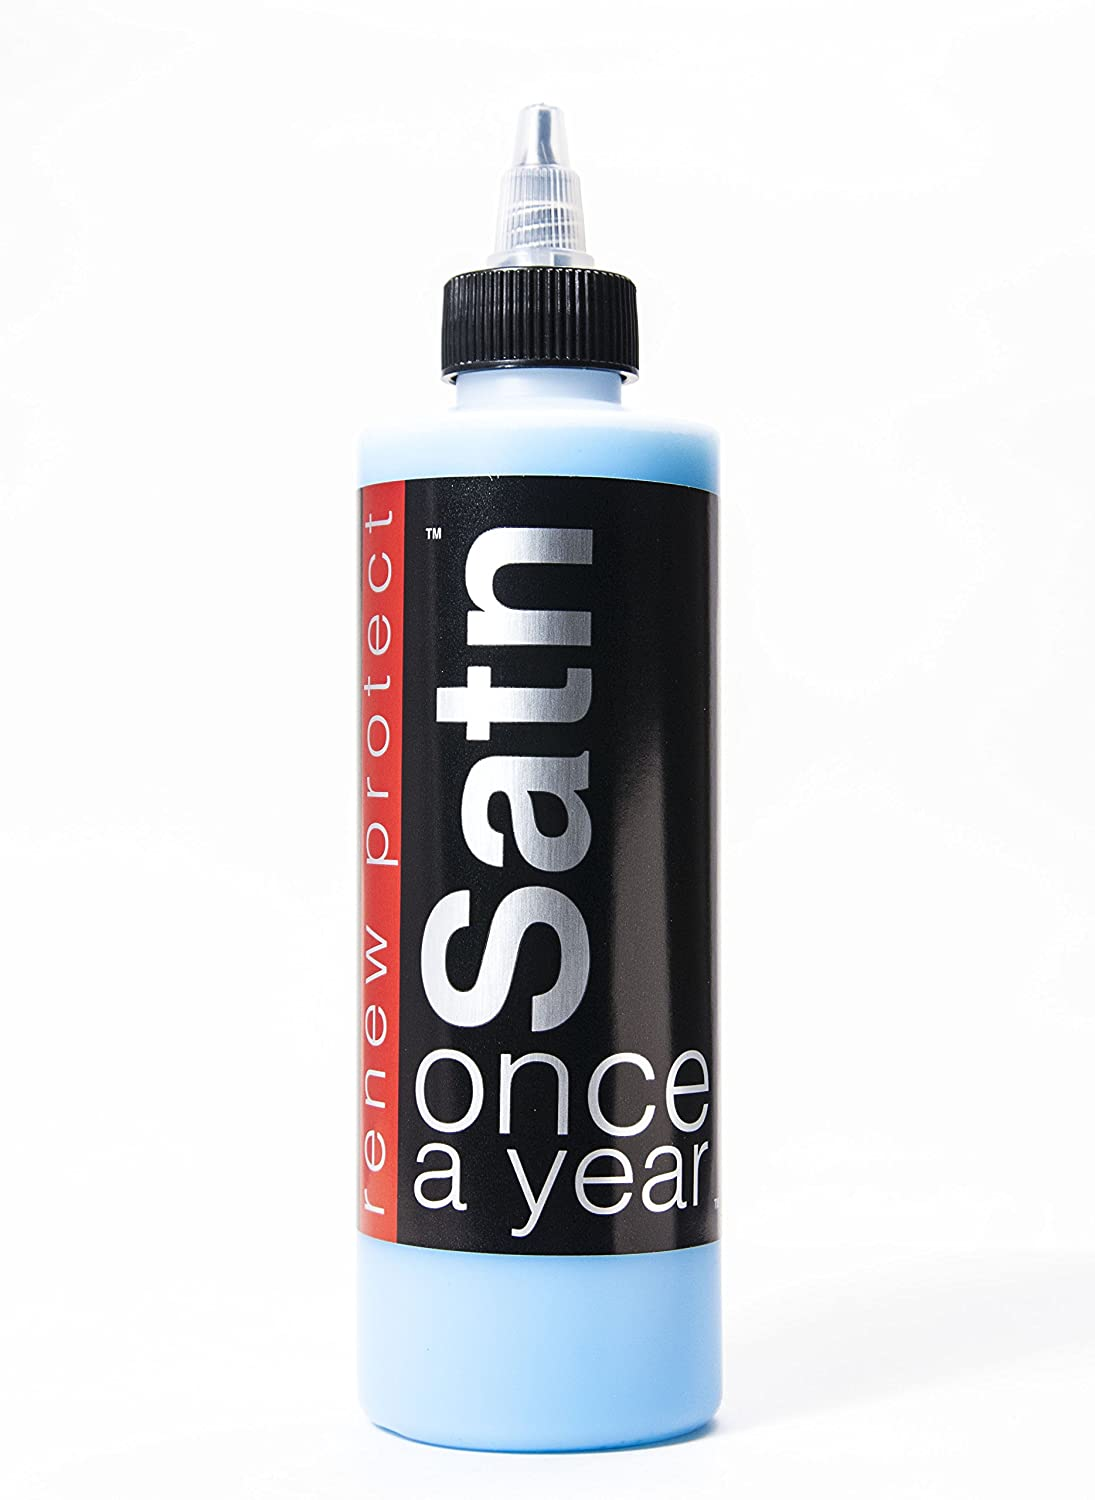 SATN, the PERMANENT PROTECTANT — Restorer Plastic and Vinyl, Renew Color, Prevents Tire Dry Rot – Weatherproof, UV Block, Dry-Seal – 16oz Kit Renew Protect :: the original since 2007 00267-16oz